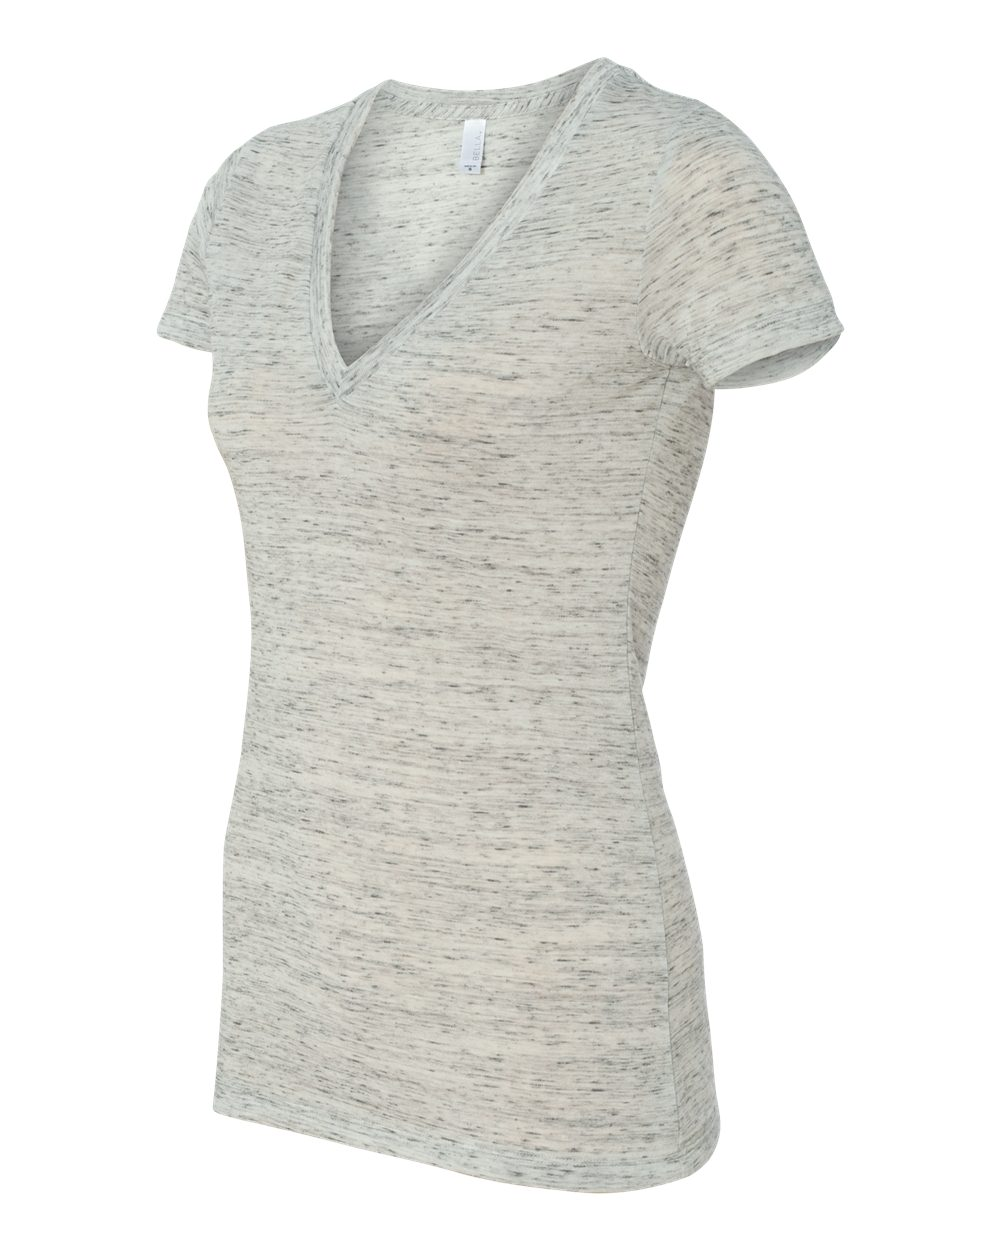 Bella-Canvas-Women-039-s-Jersey-Short-Sleeve-Deep-V-Neck-T-Shirt-B6035-S-2XL thumbnail 24